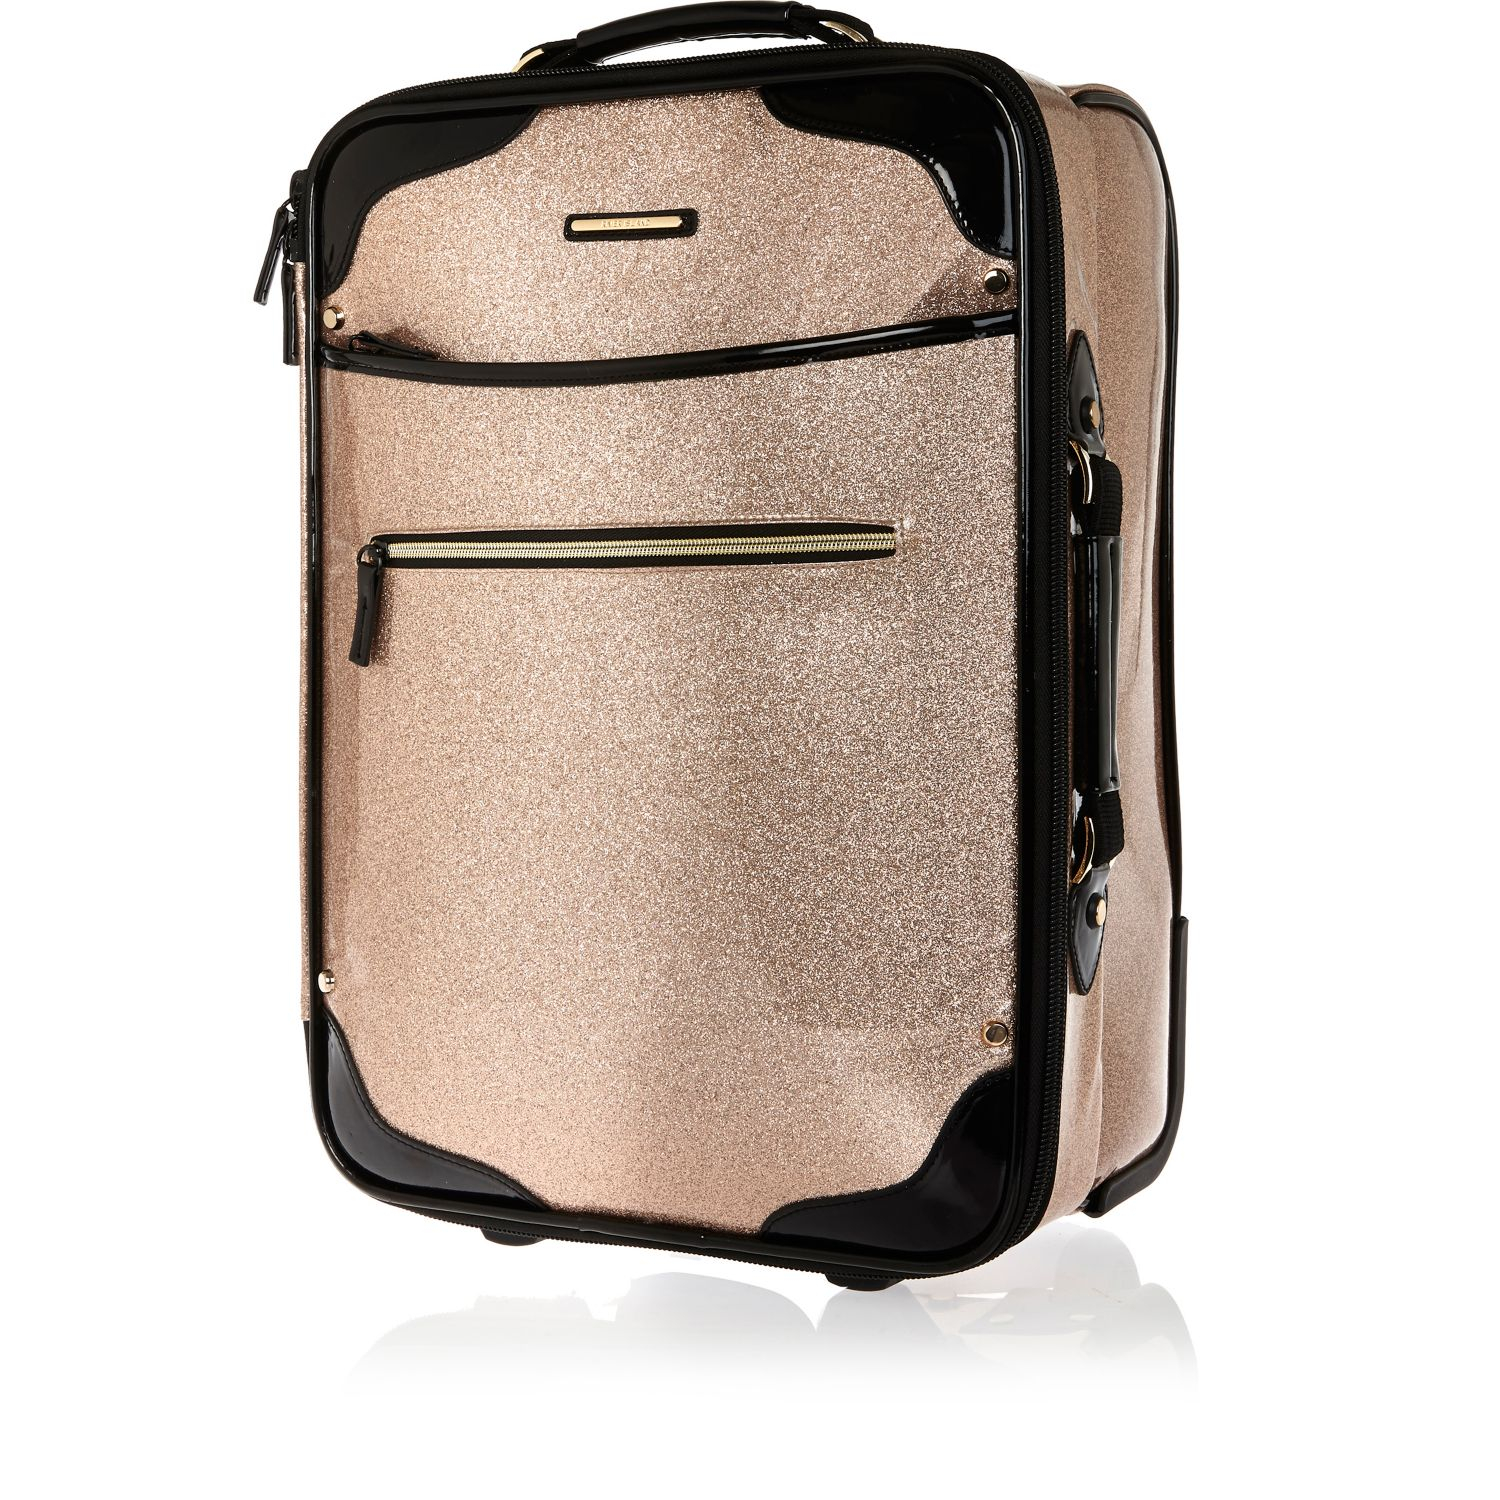 Pink Glitter Suitcase | Luggage And Suitcases